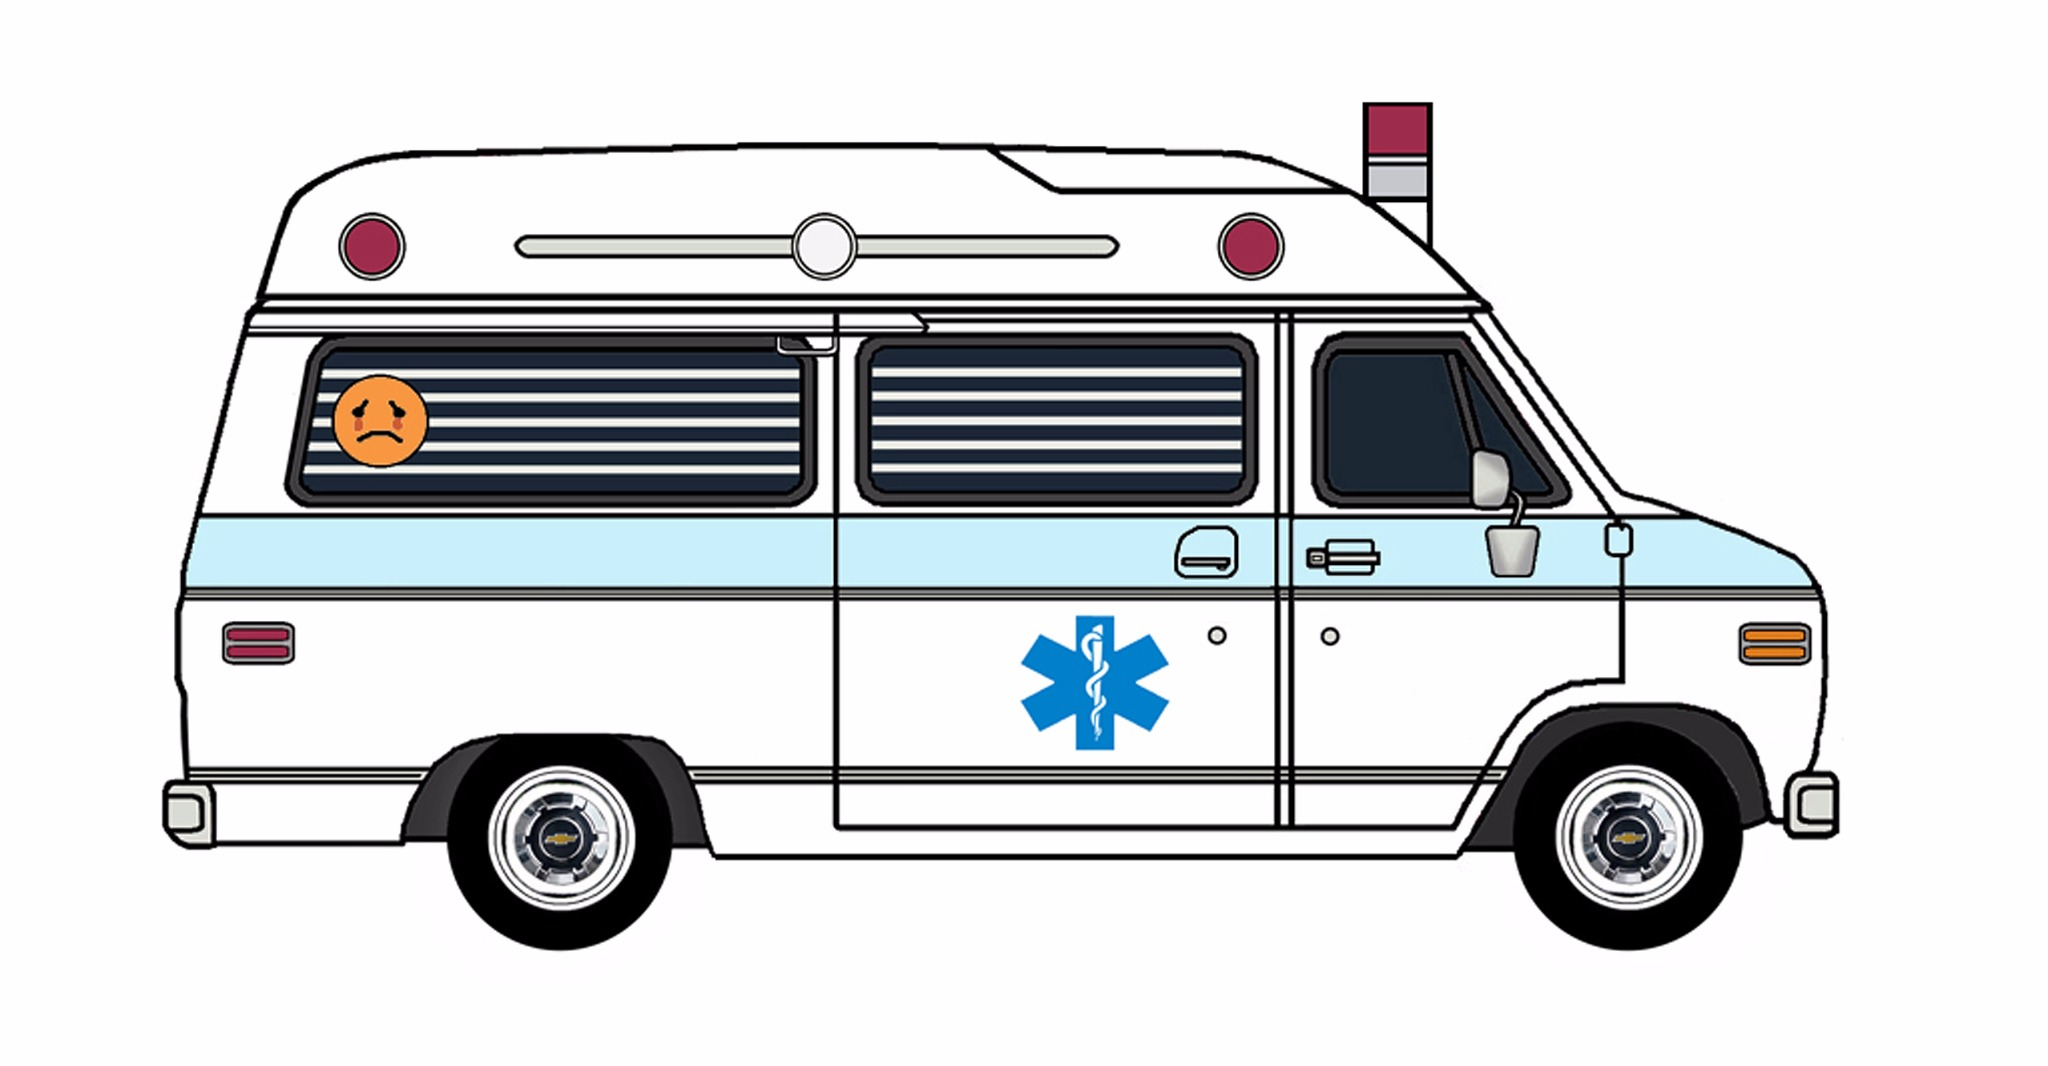 1977 Chevy G20 Ambulance WHITE & PALE BLUE